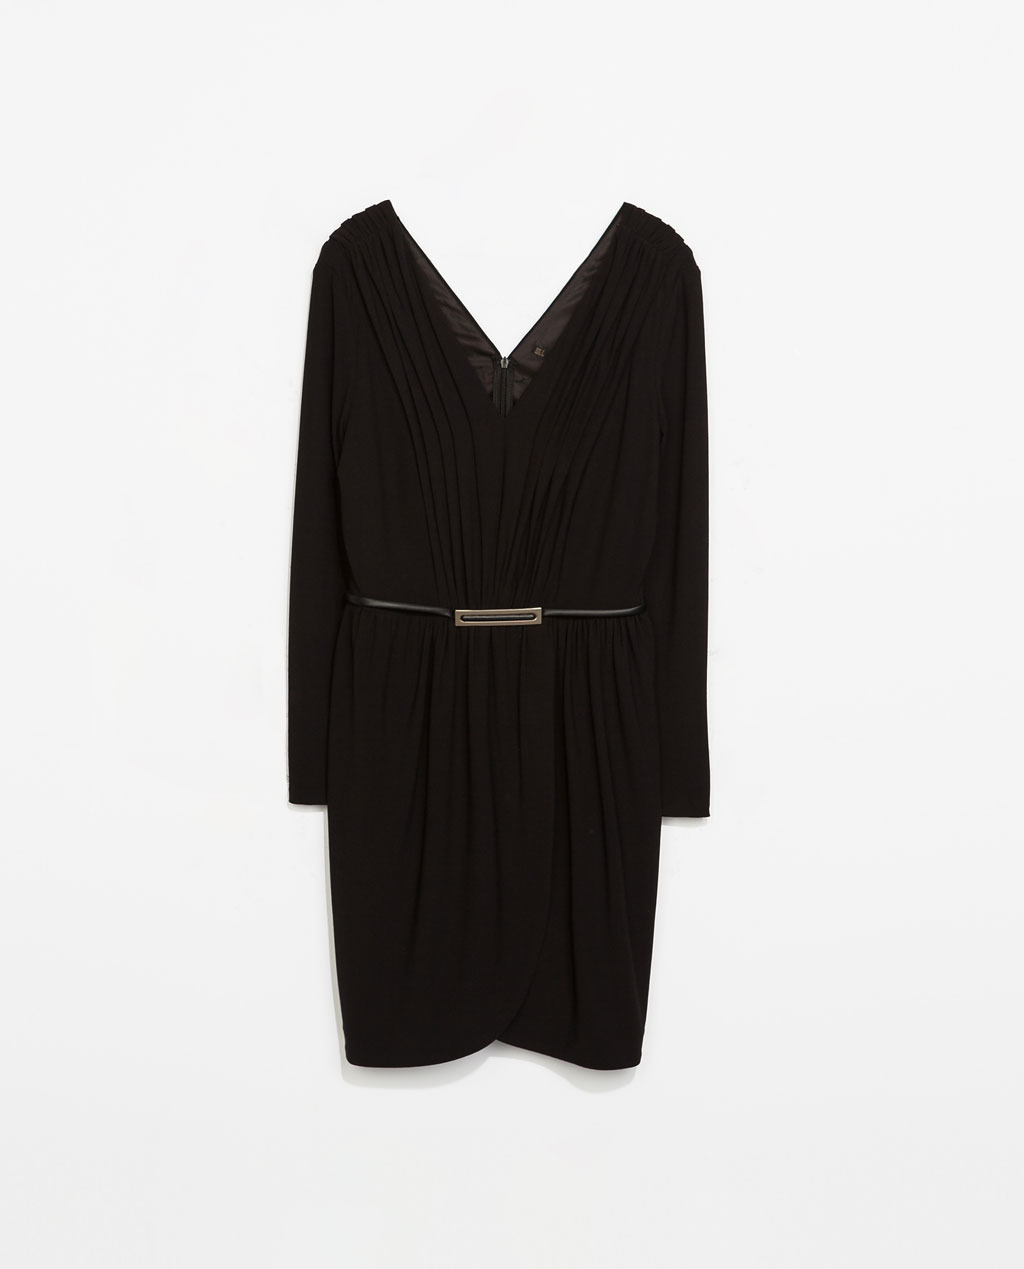 V Neck Knit Dress - style: shift; neckline: low v-neck; pattern: plain; back detail: low cut/open back; waist detail: belted waist/tie at waist/drawstring; predominant colour: black; occasions: casual, evening, creative work; length: just above the knee; fit: body skimming; fibres: polyester/polyamide - stretch; sleeve length: long sleeve; sleeve style: standard; texture group: knits/crochet; pattern type: knitted - other; season: s/s 2014